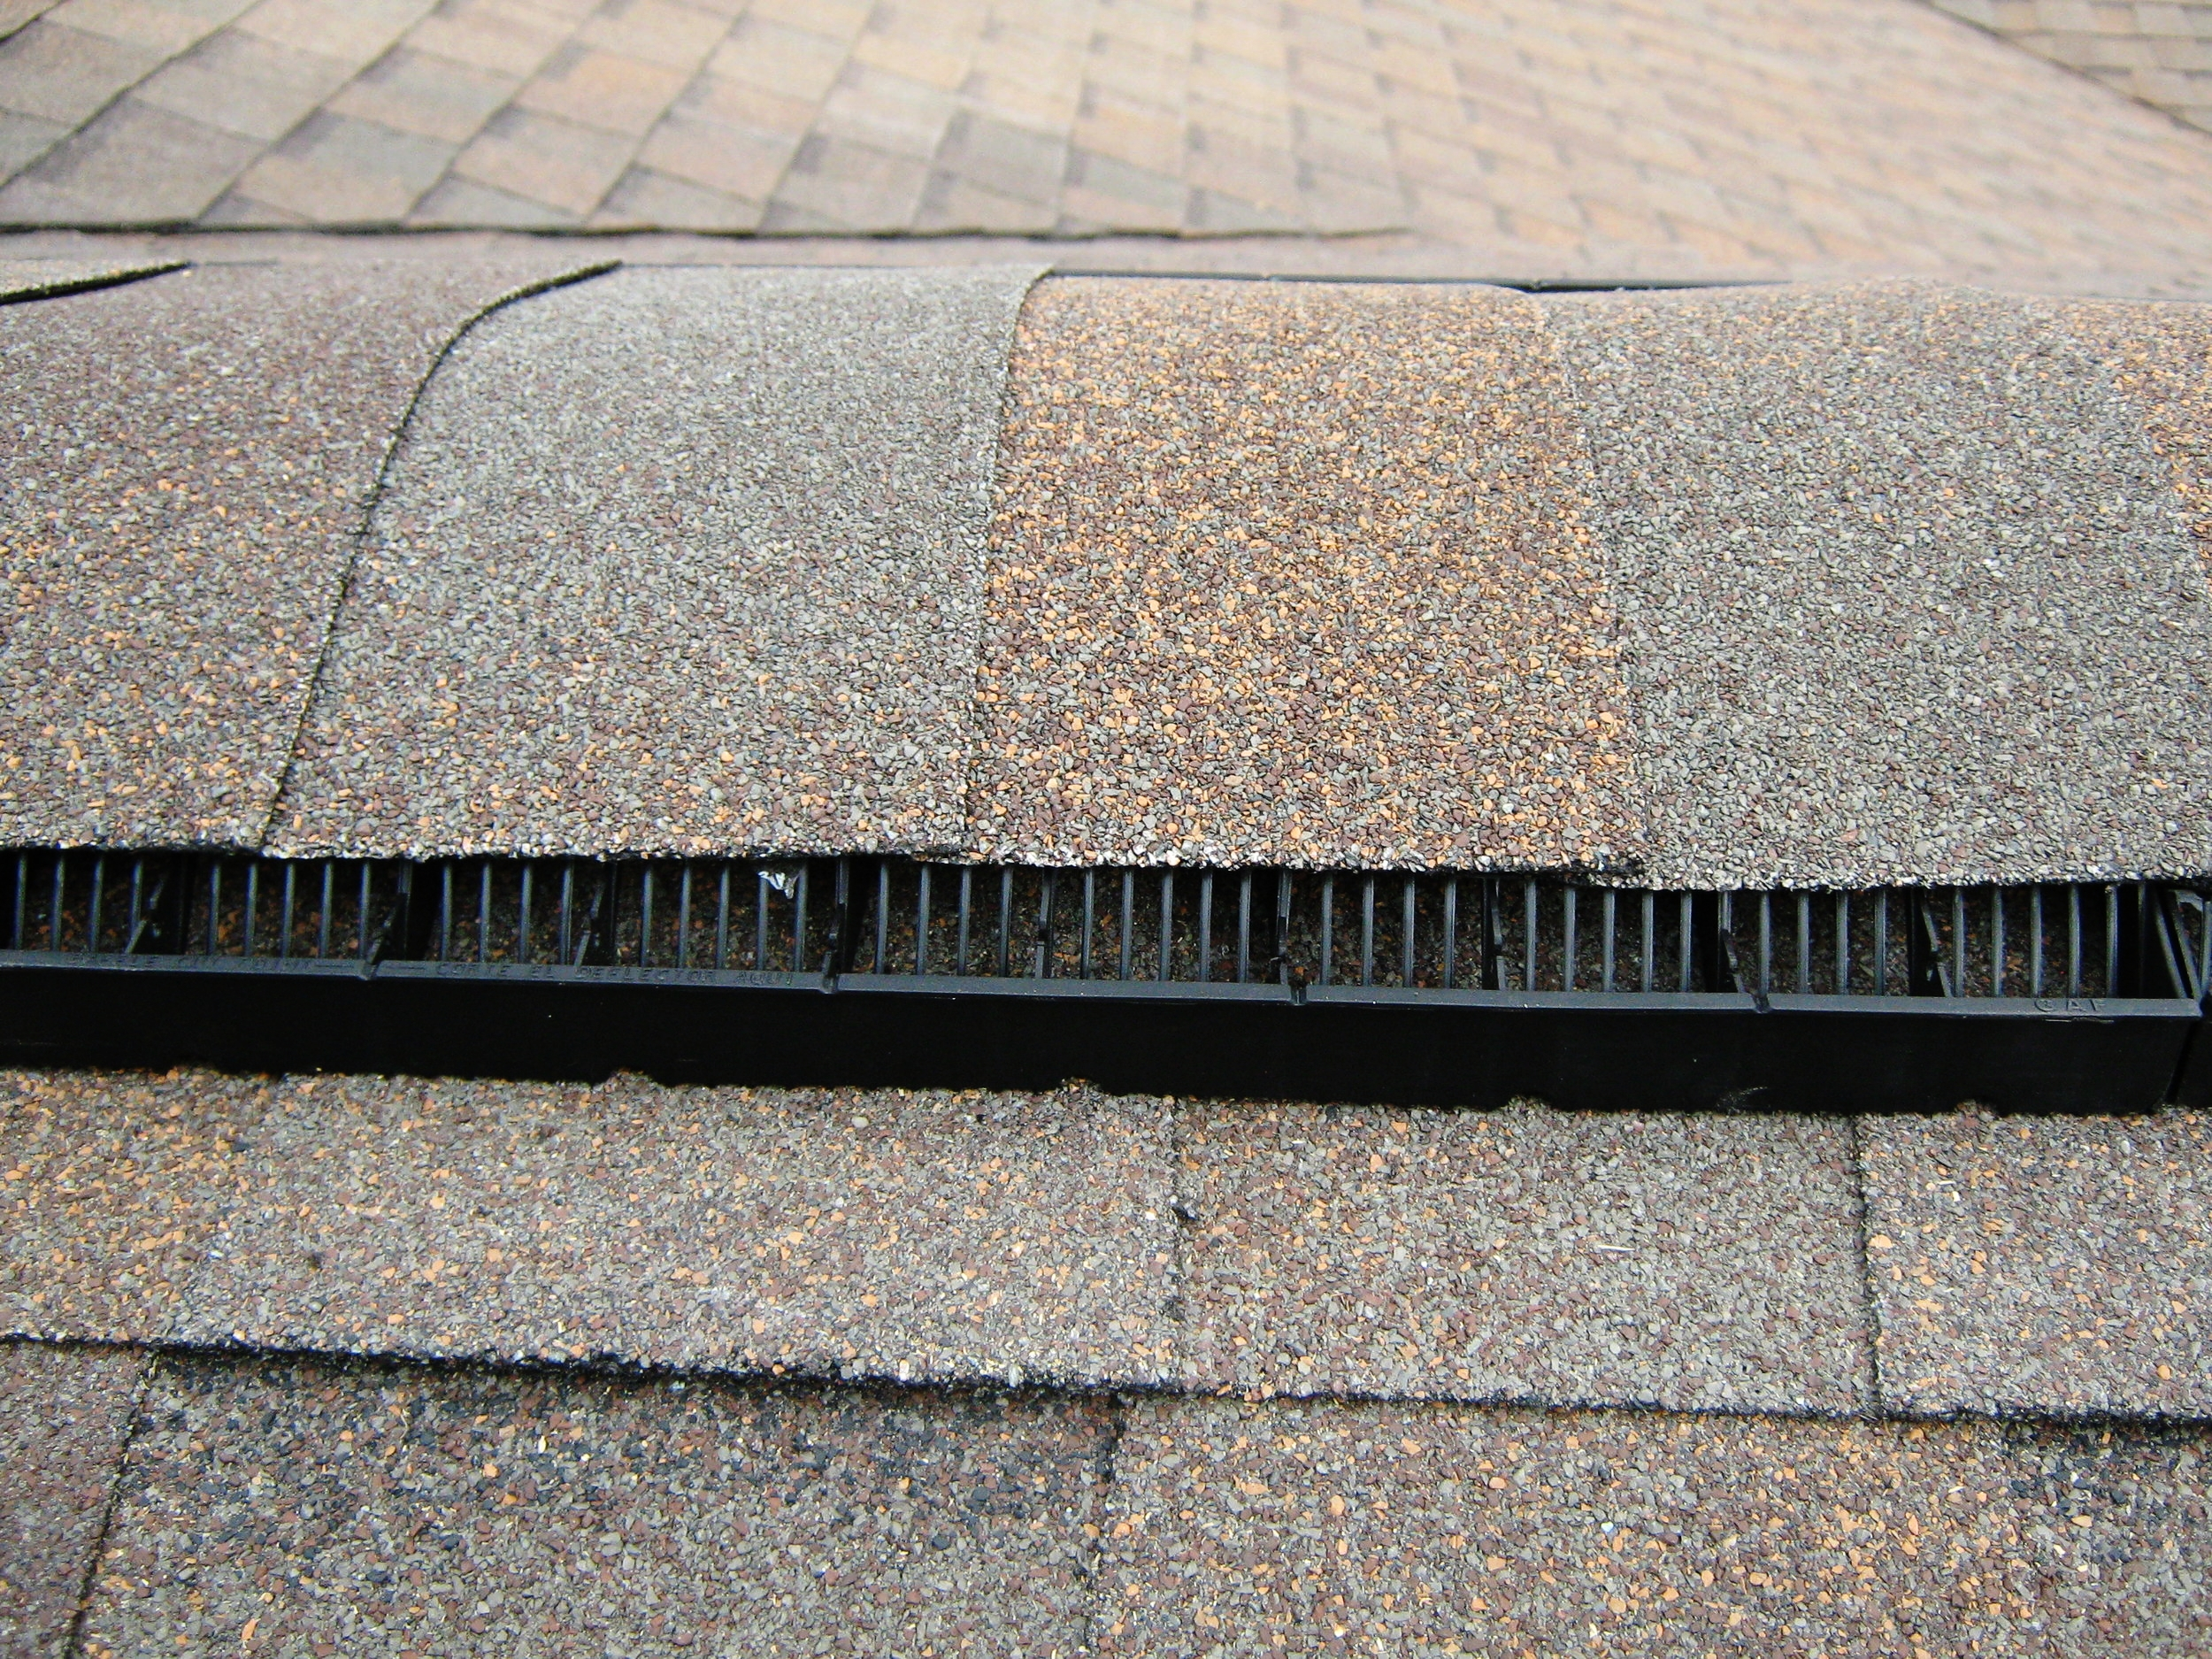 h-recommendation-broan-nutone-636-roof-vent-cap-only.jpg